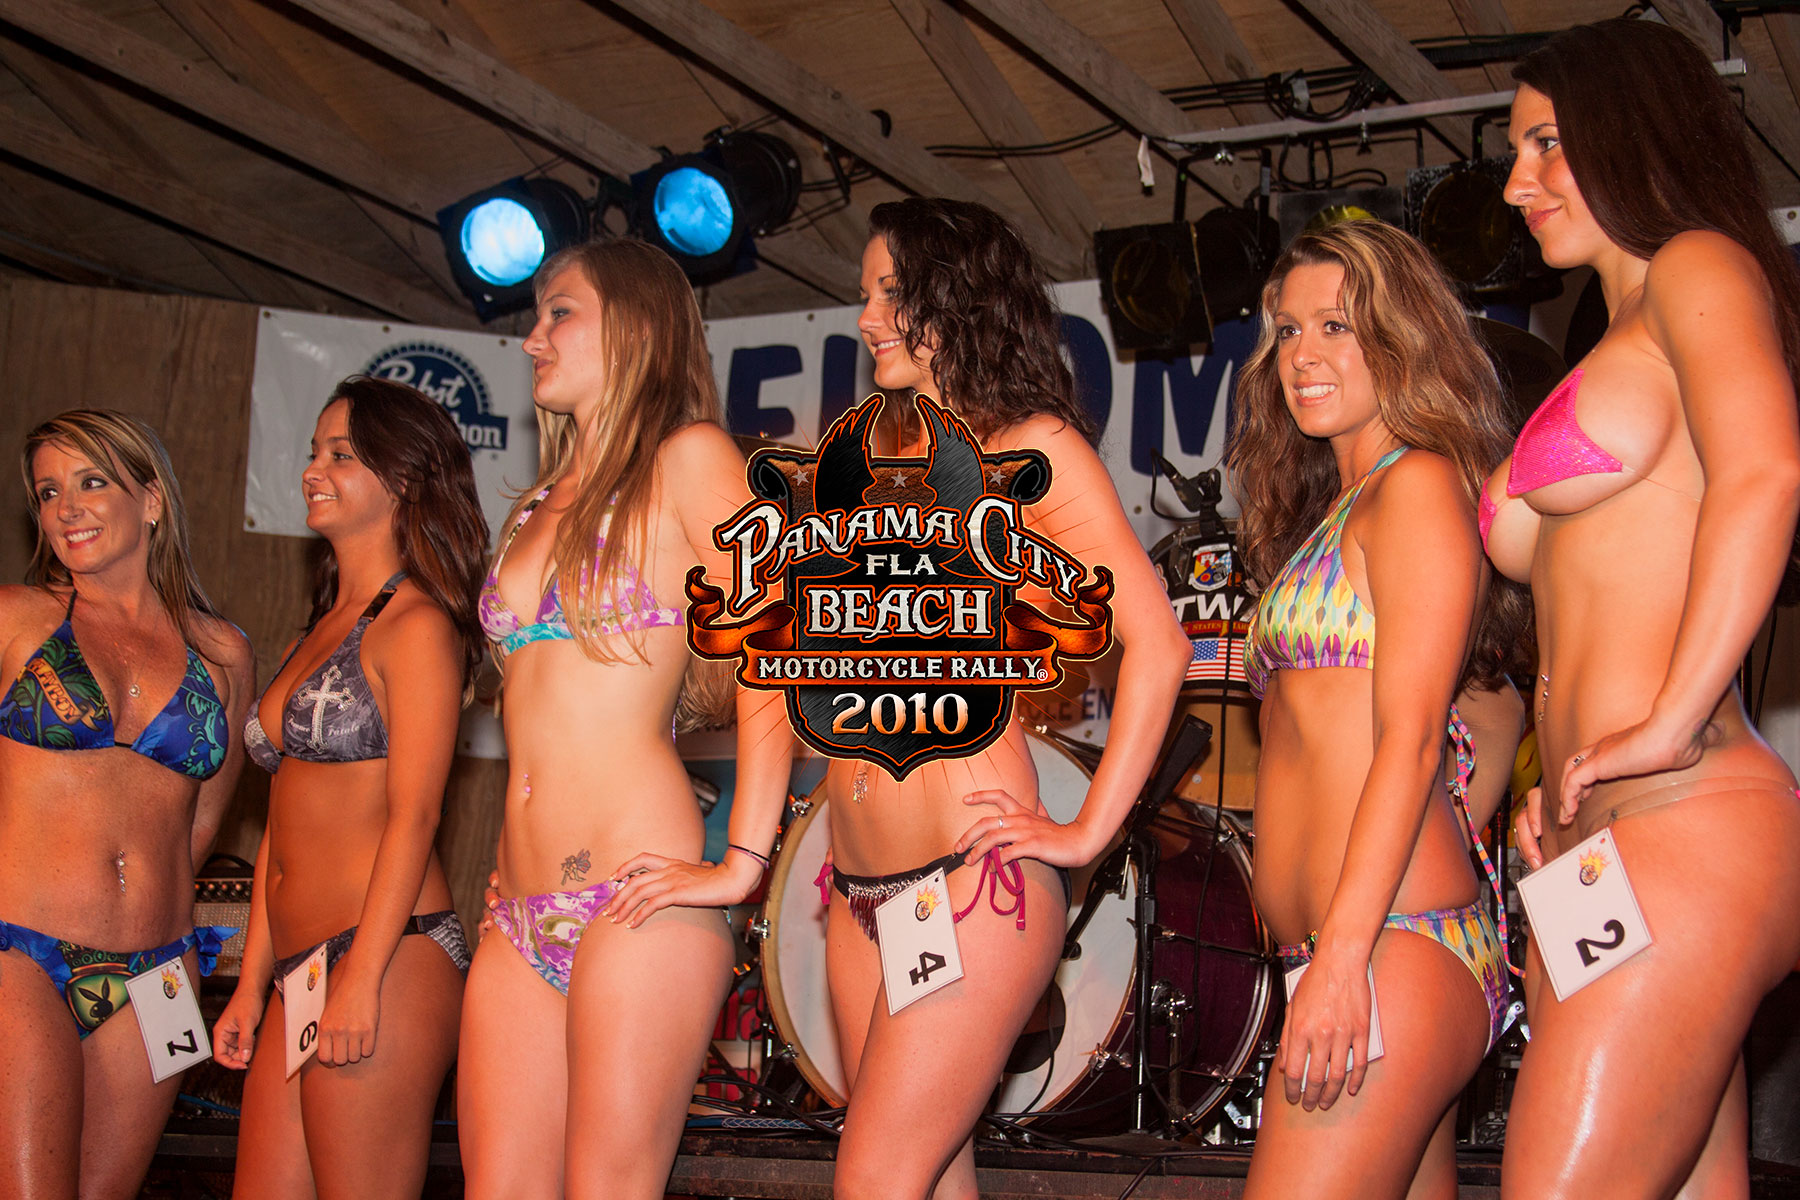 Motorcycle Rally Photos | Panama City Beach Motorcycle Rally® | 2010 Event Photos